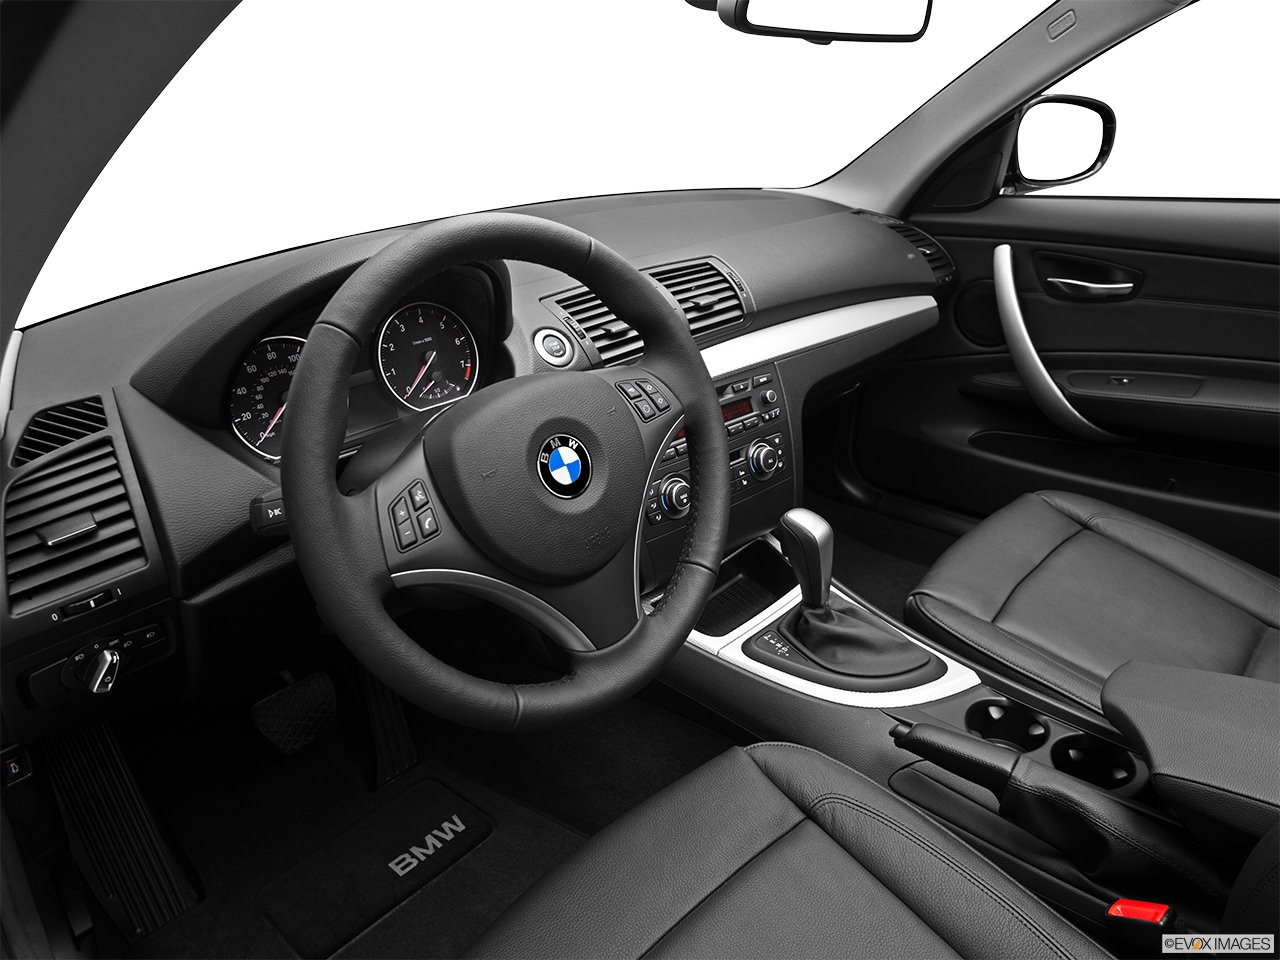 BMW 1-Series 2012 Interior